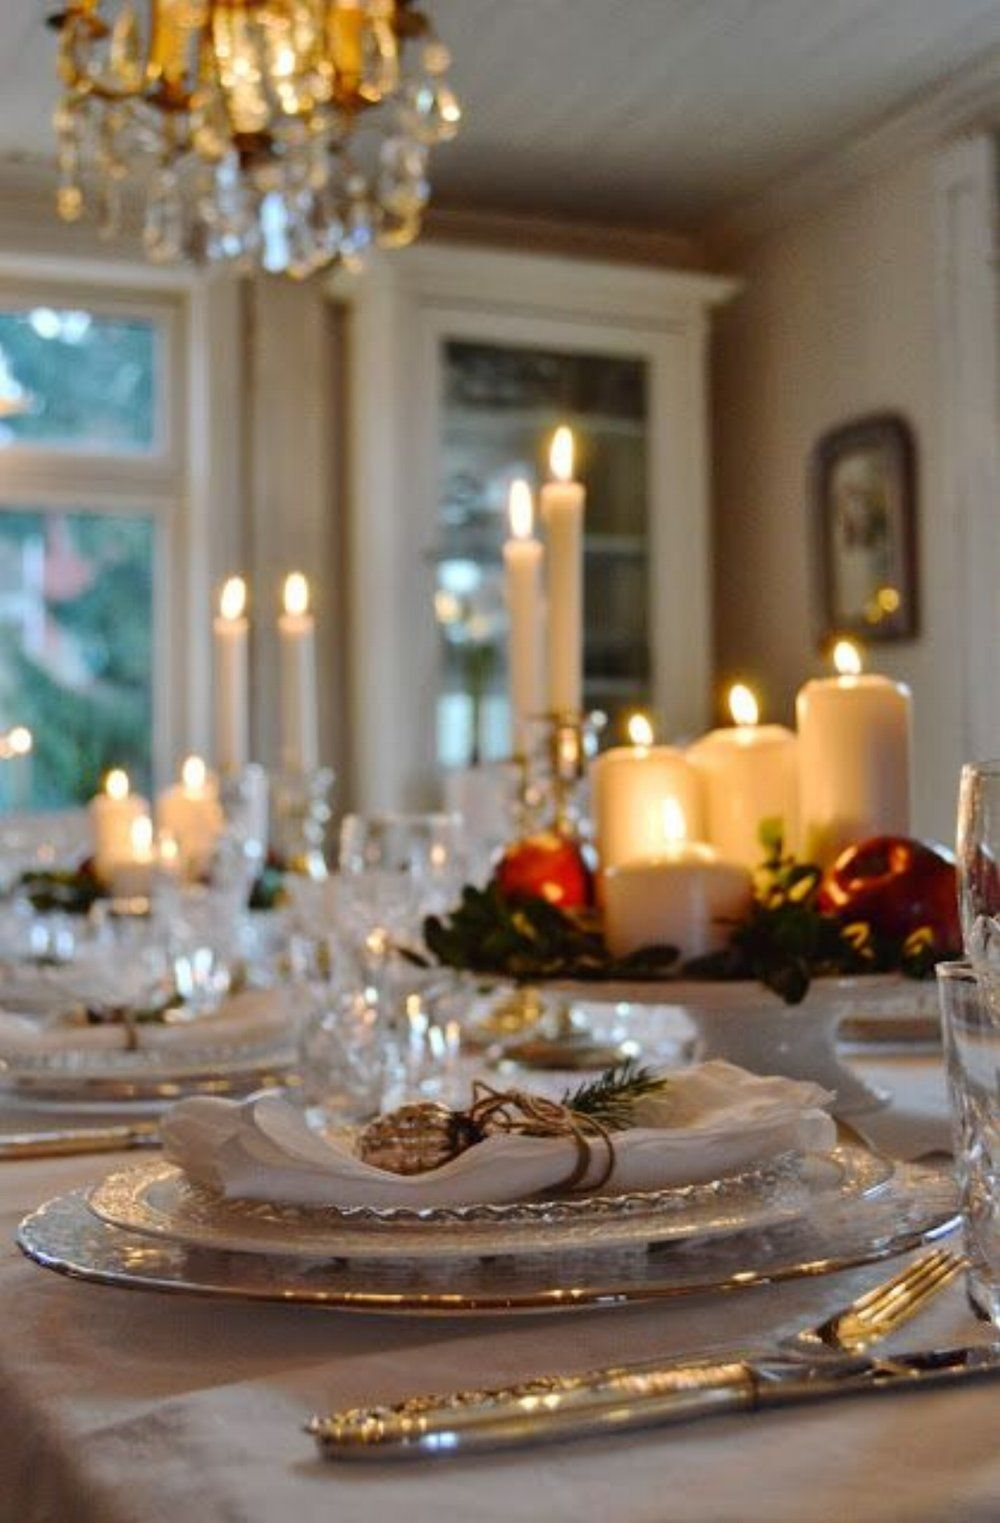 34 Gorgeous Christmas Tablescapes And Centerpiece Ideas ...